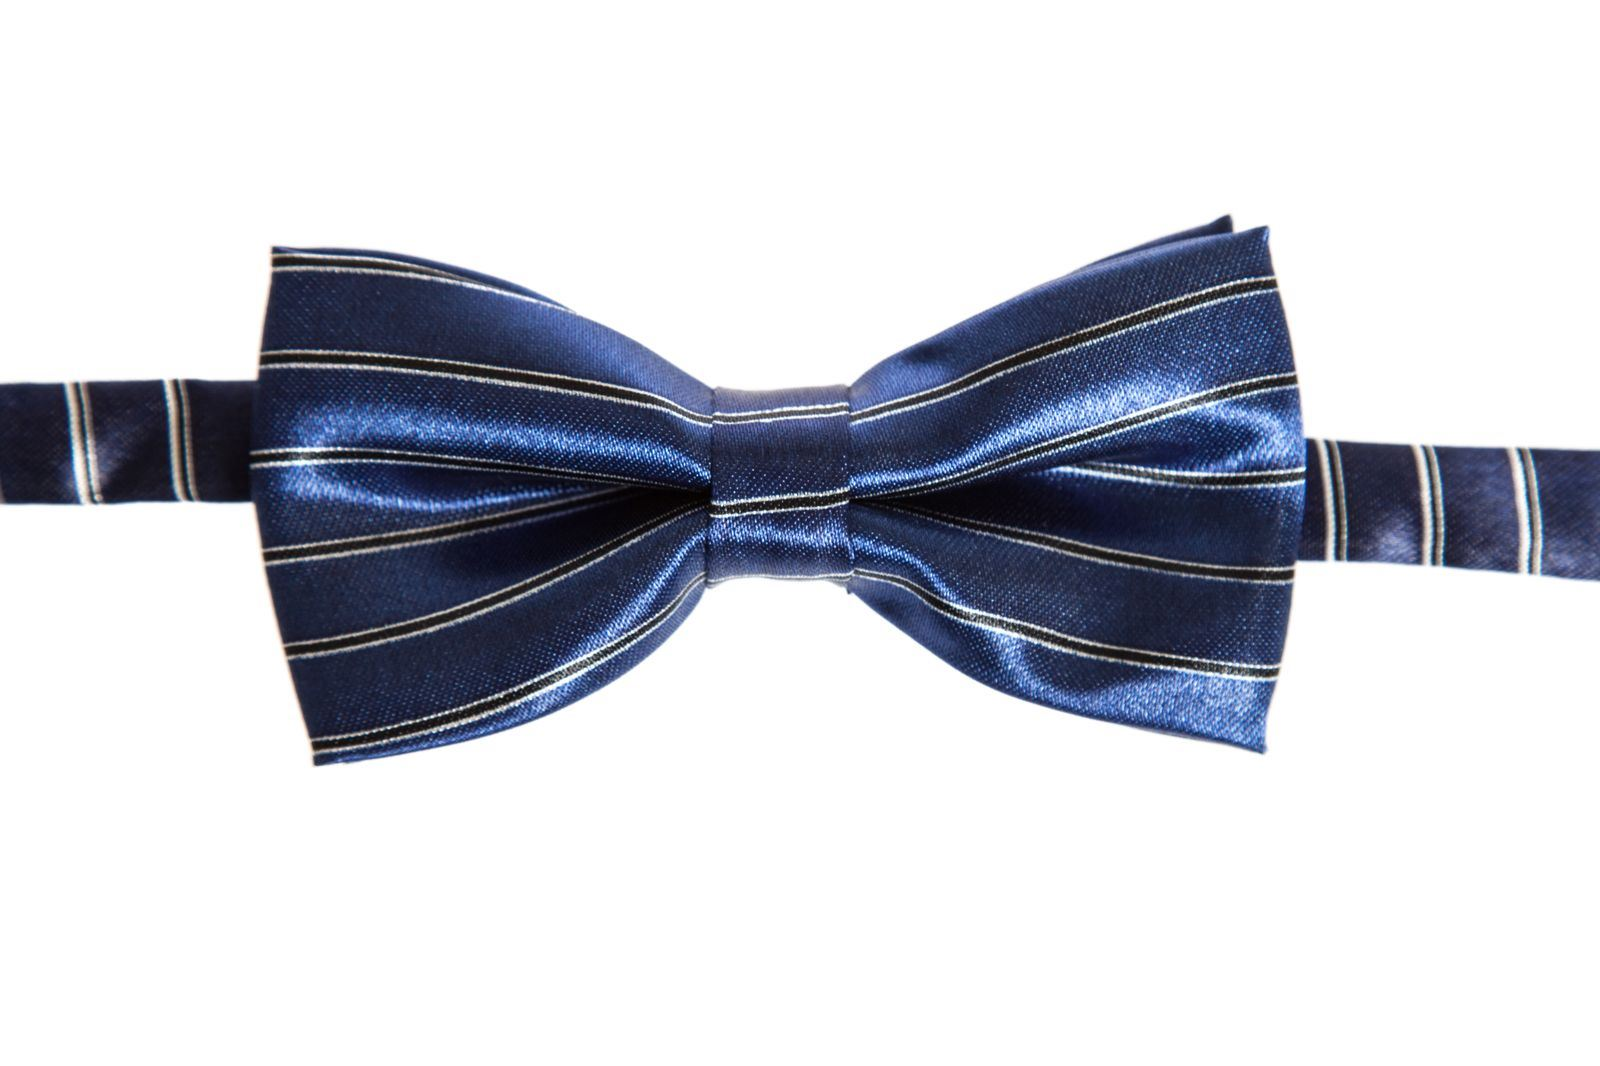 Patterned Bow Ties. Looking for a more sophisticated look? Then these patterned bow ties will just be perfect for you. In this selection you will find bow ties with all kinds of intricate fabric patterns such as polka dots, paisleys, strips, checks, foulards, and more.